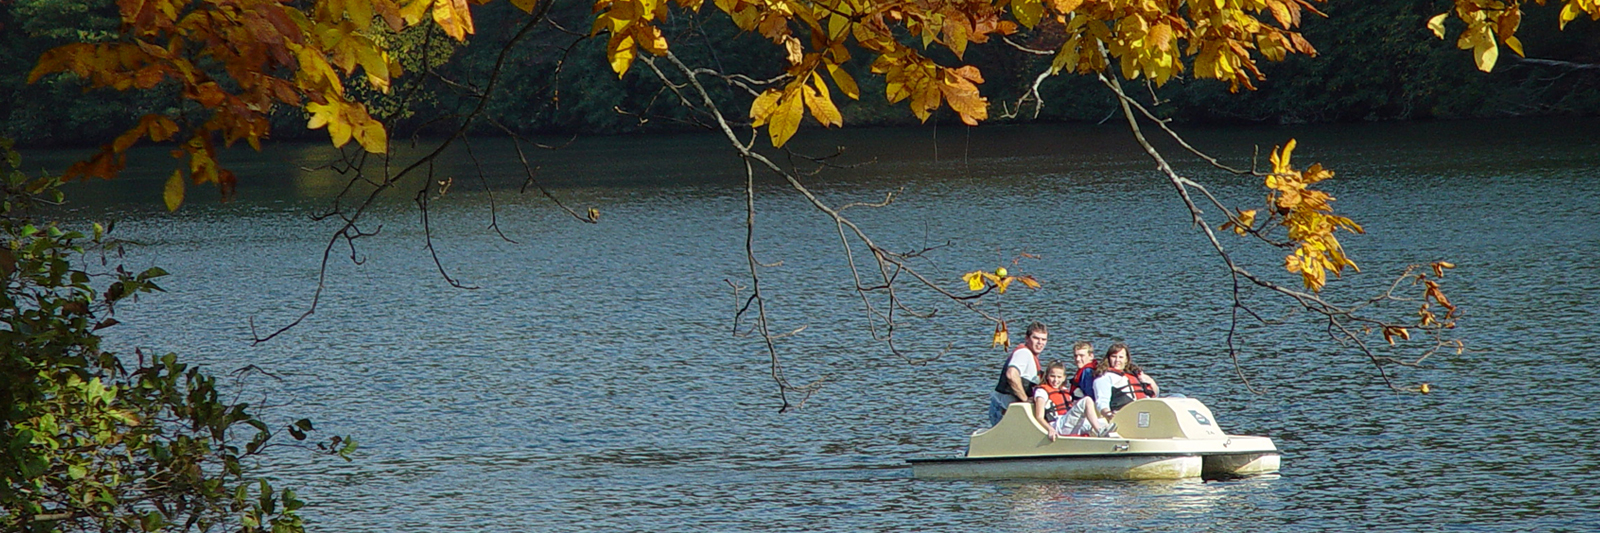 VogelPaddleboats-Fall.jpg